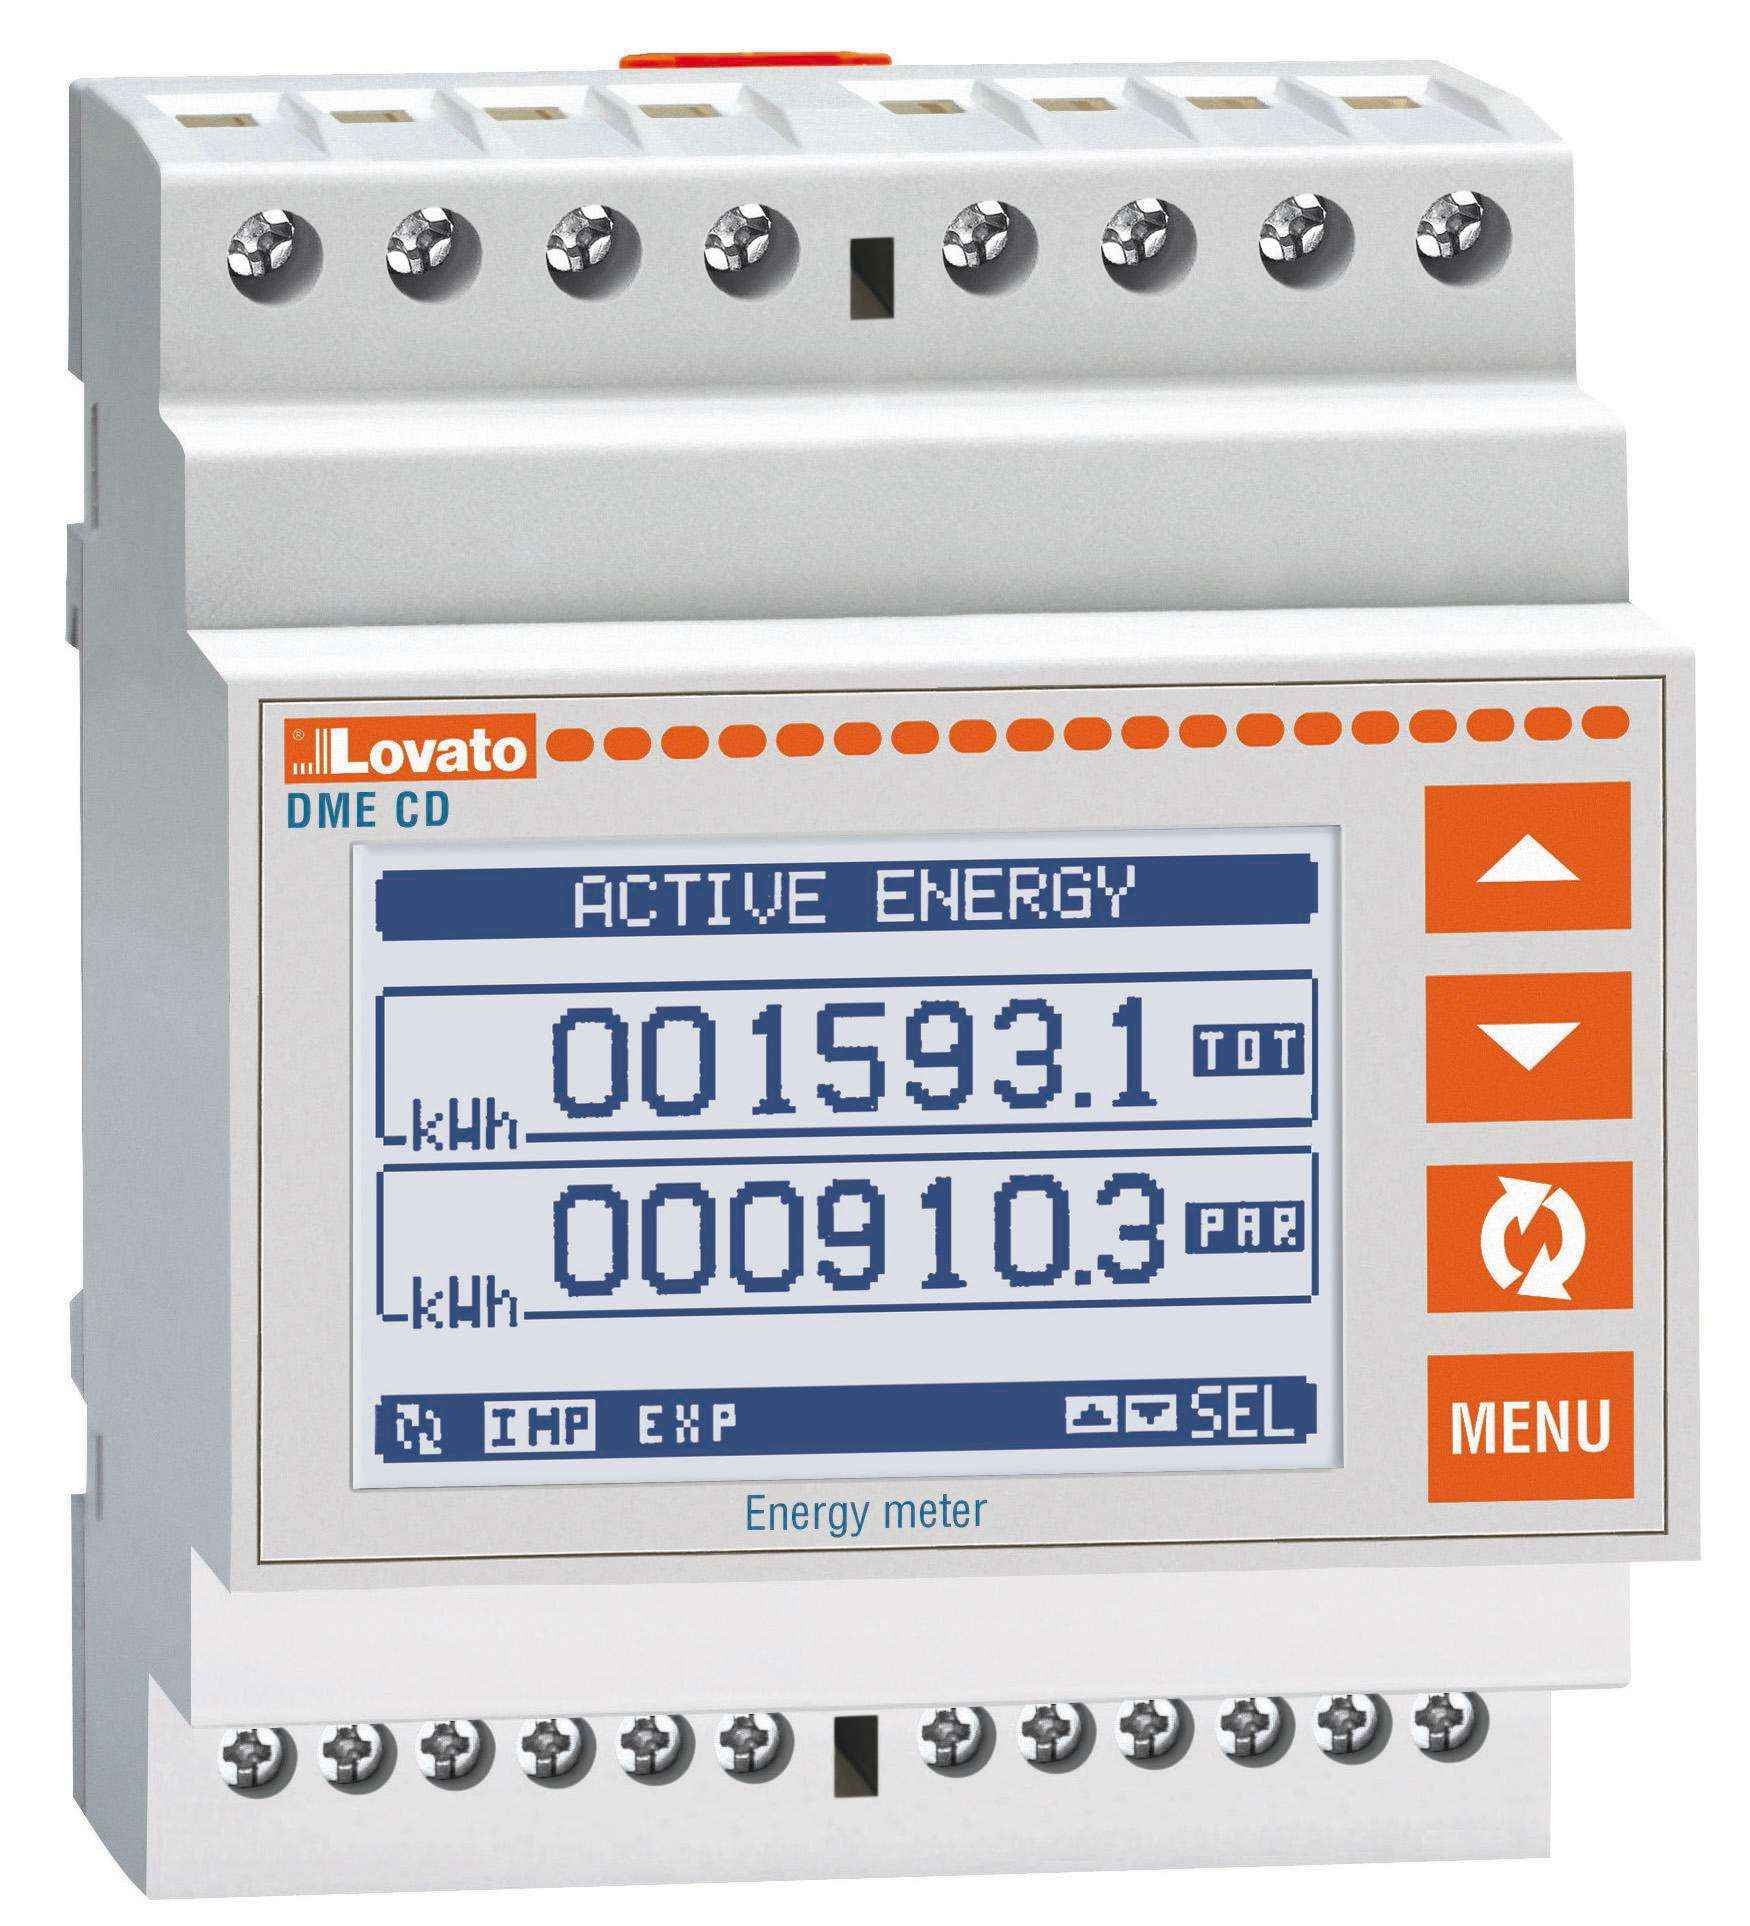 DME CD & CD PV1 Data Concentrators